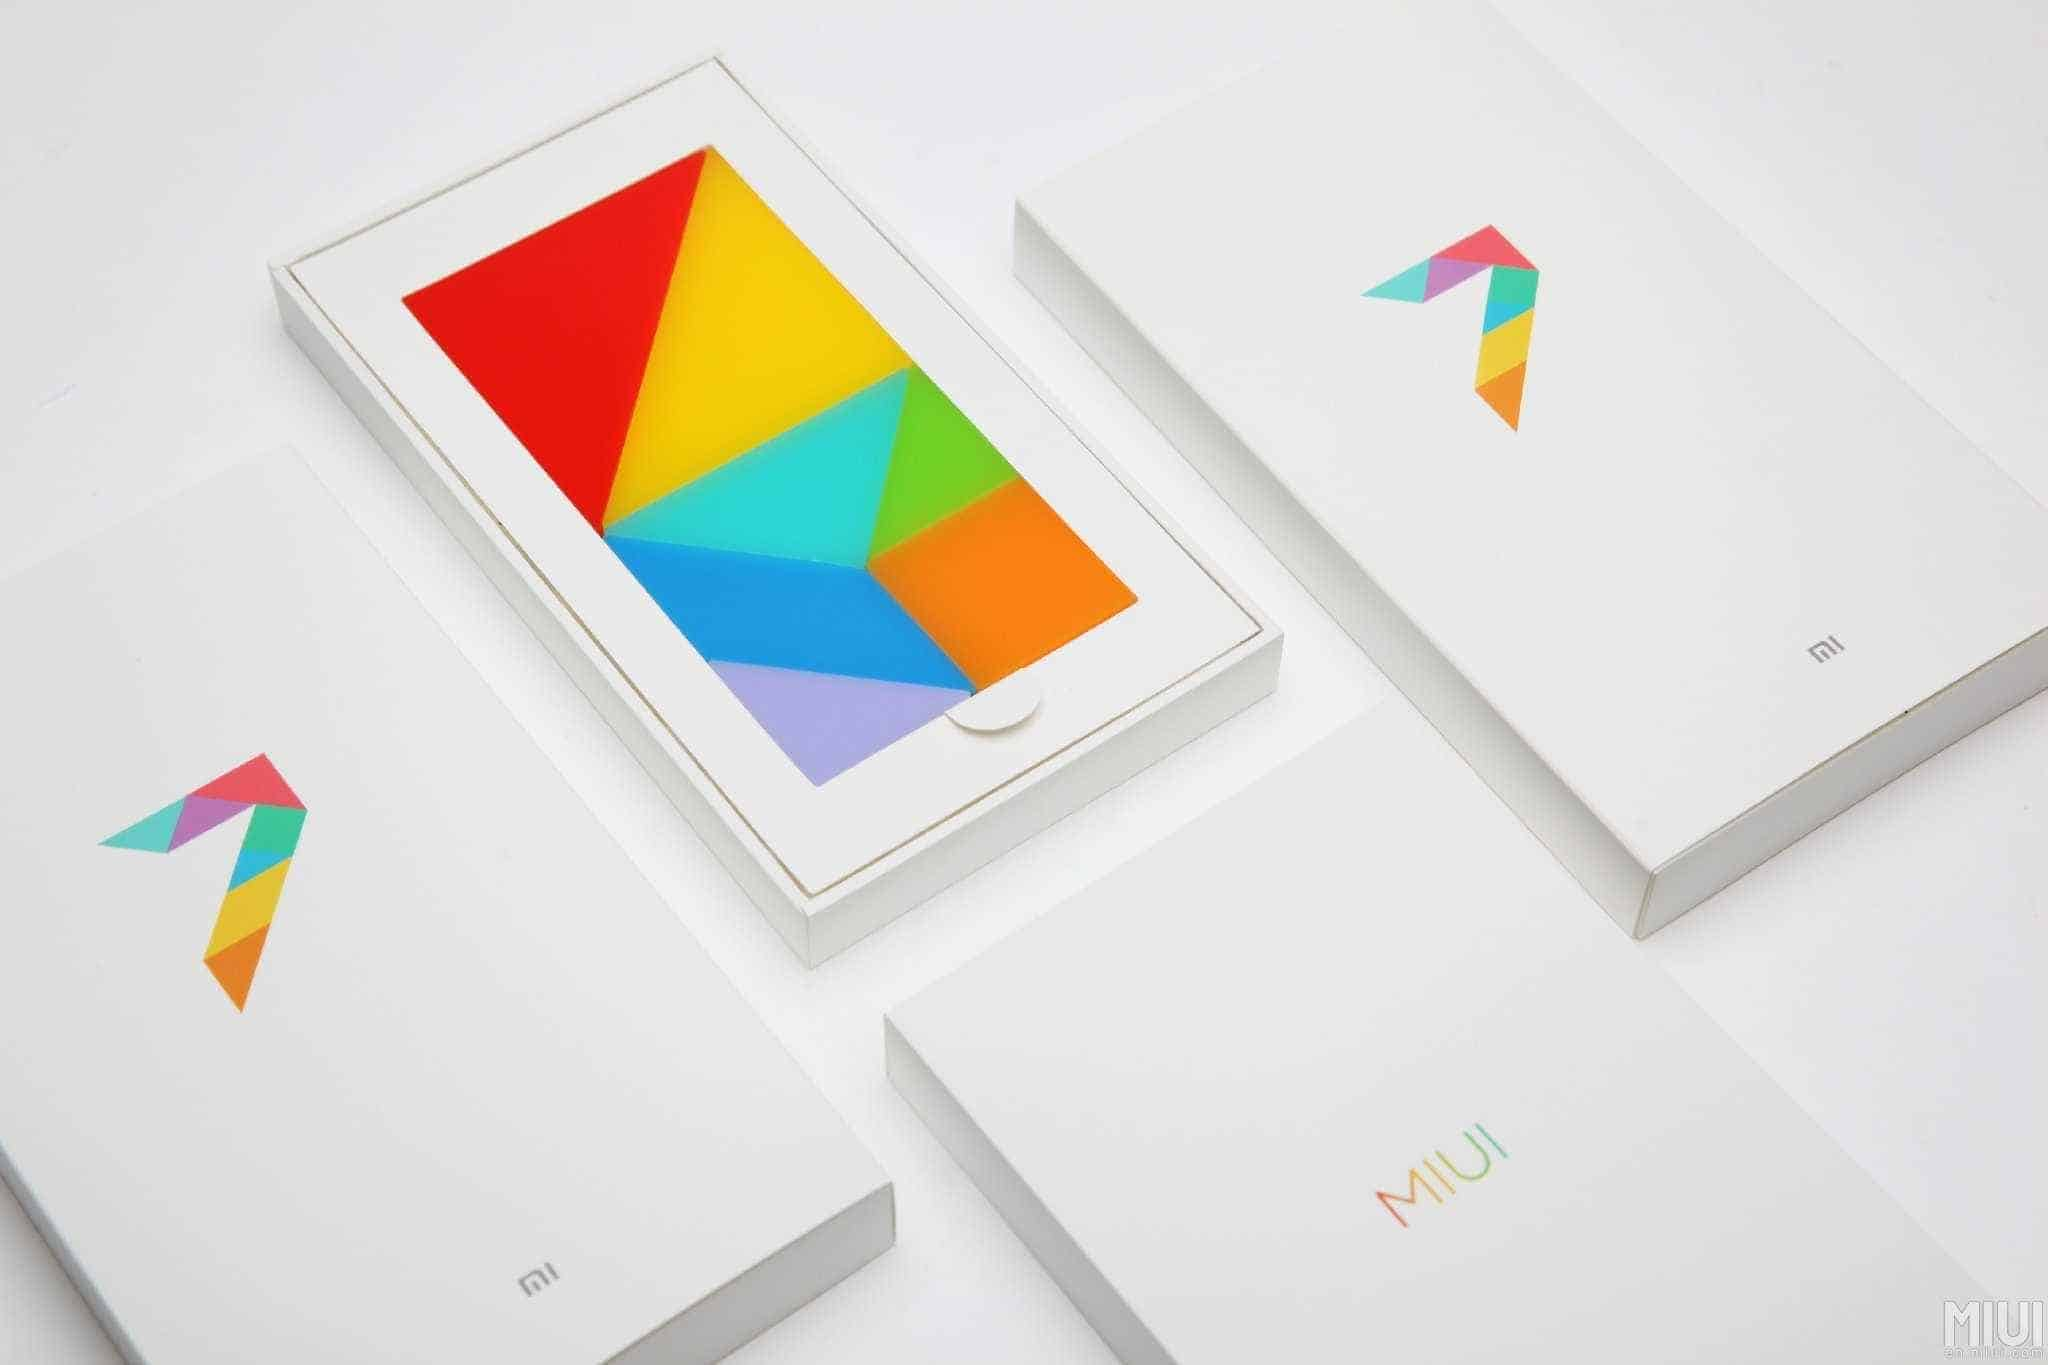 How to install MIUI 7 ROM on Xiaomi Redmi 1S, Redmi 2, Mi 4i, Mi3, Mi 4, Redmi Note 3G and Redmi Note 4G